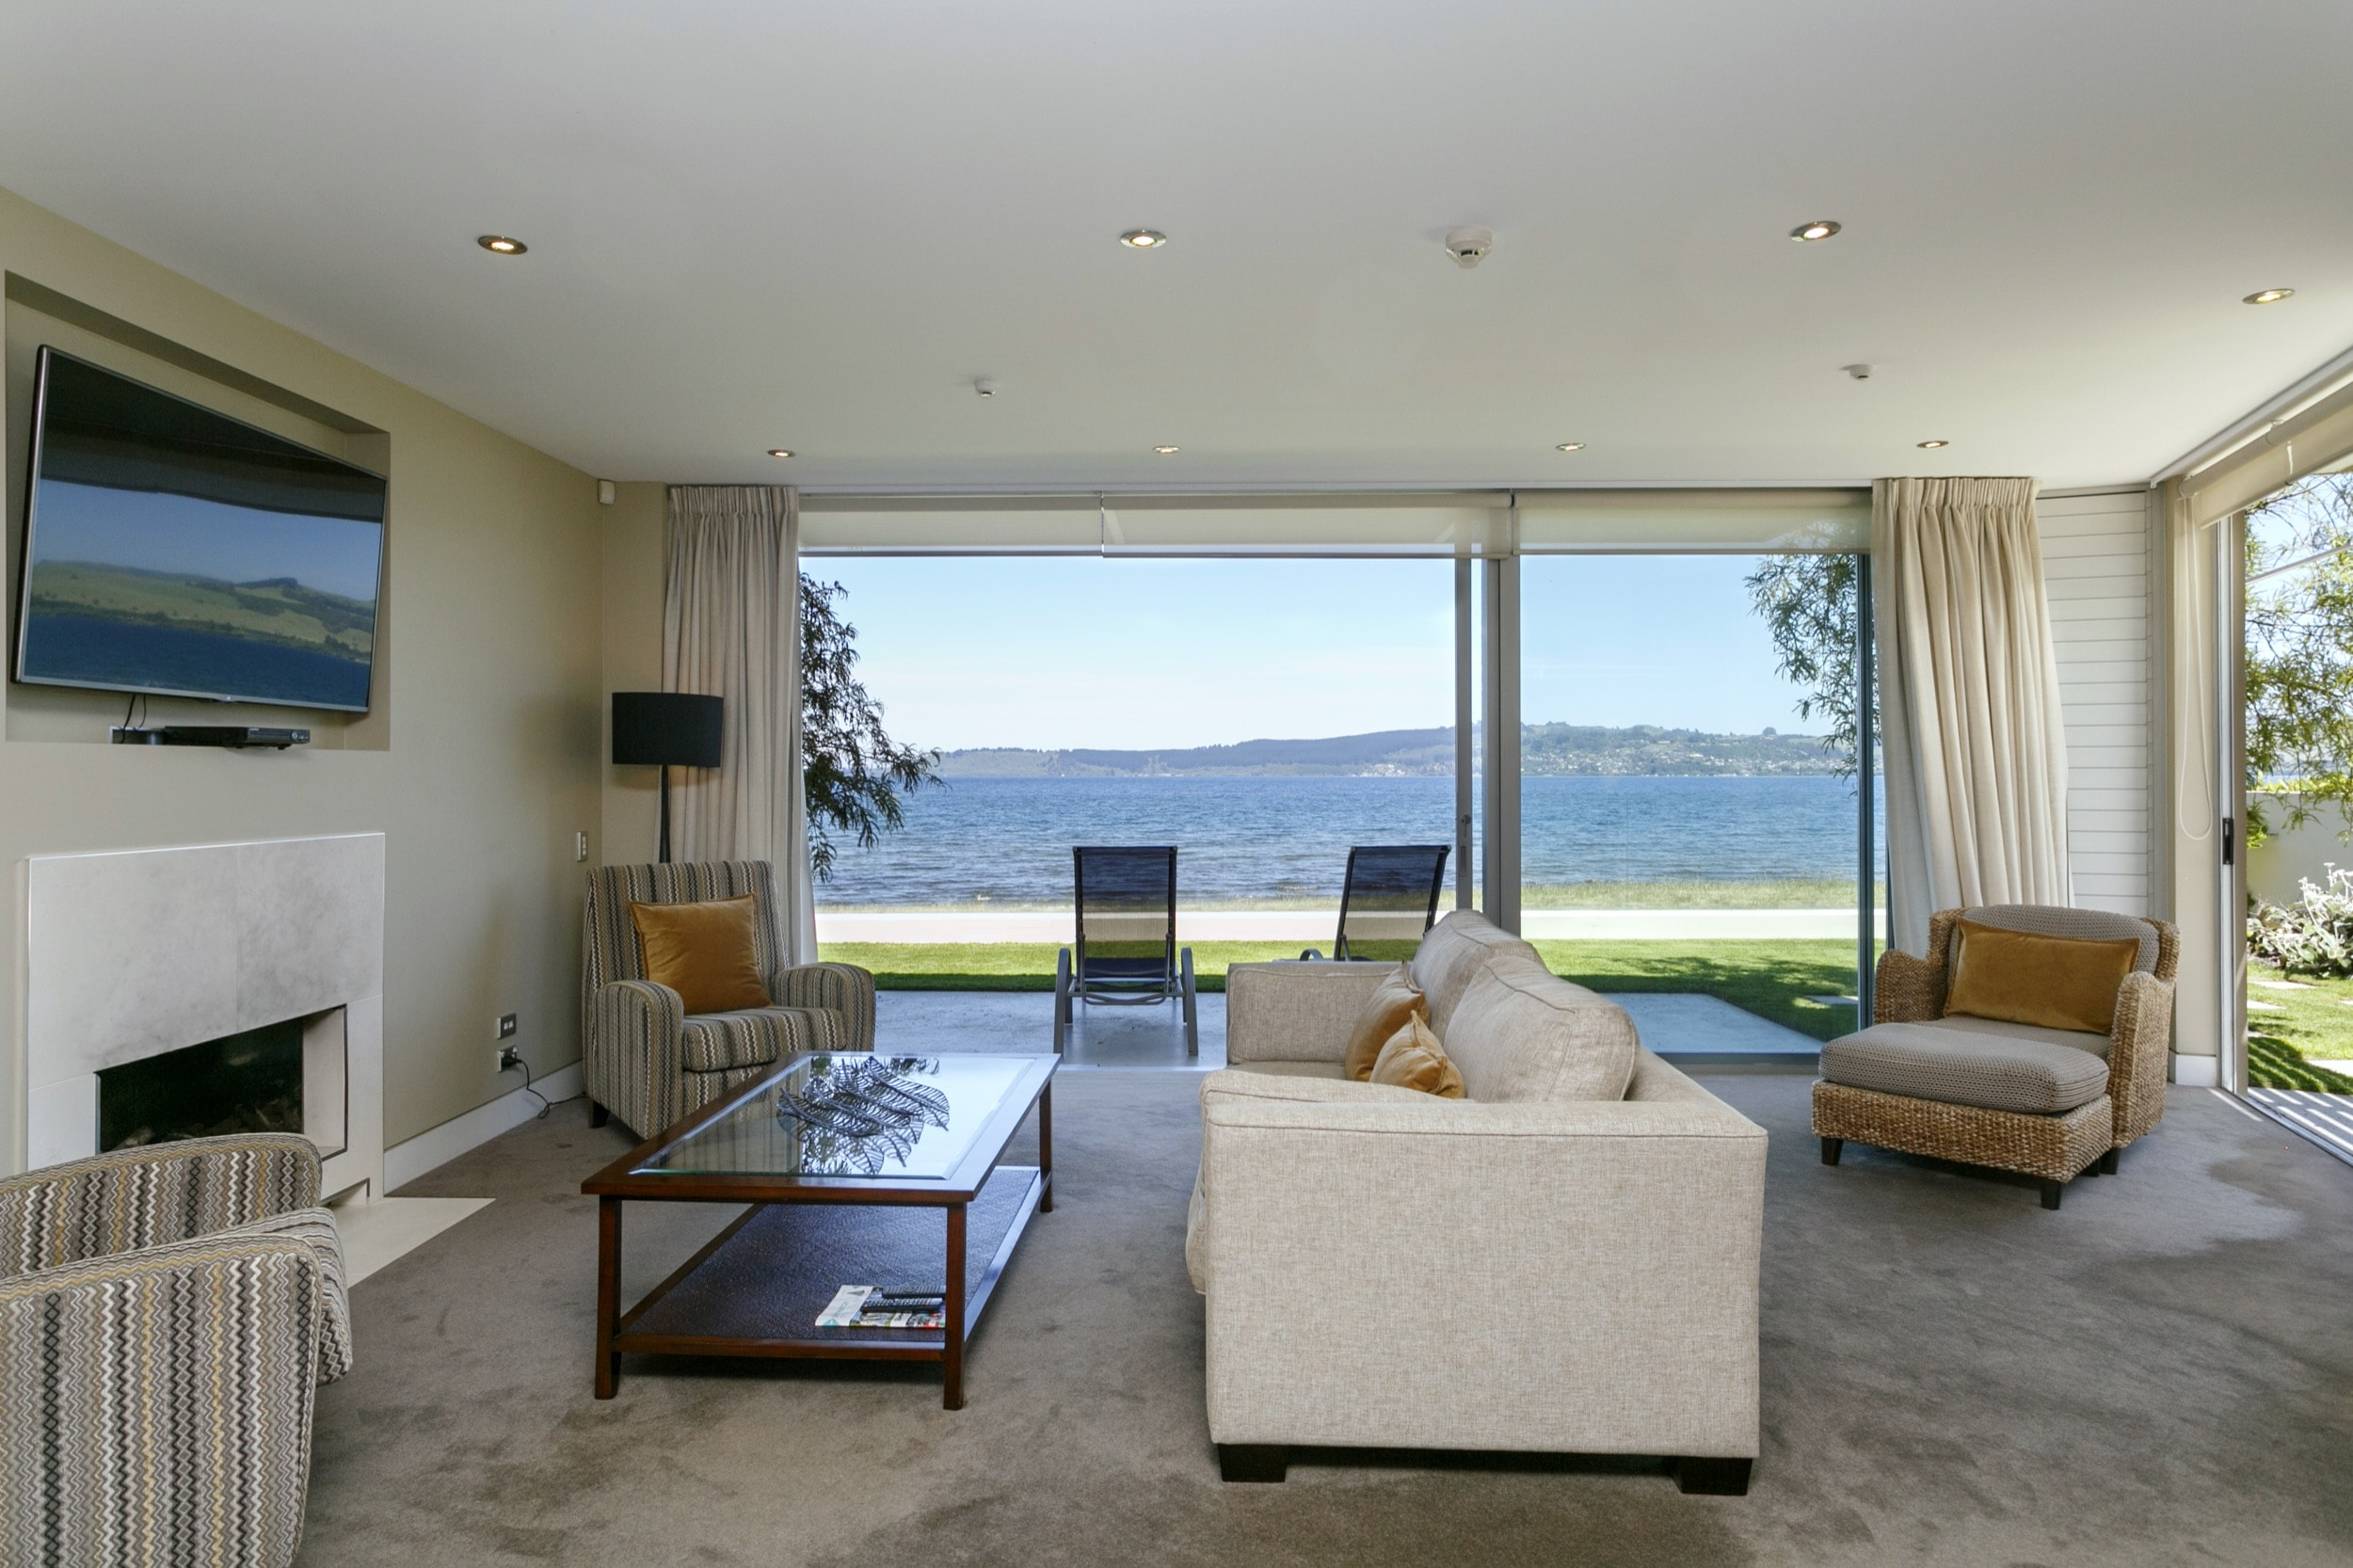 Ground floor two bedroom apartment living area looking out onto lake front.jpg